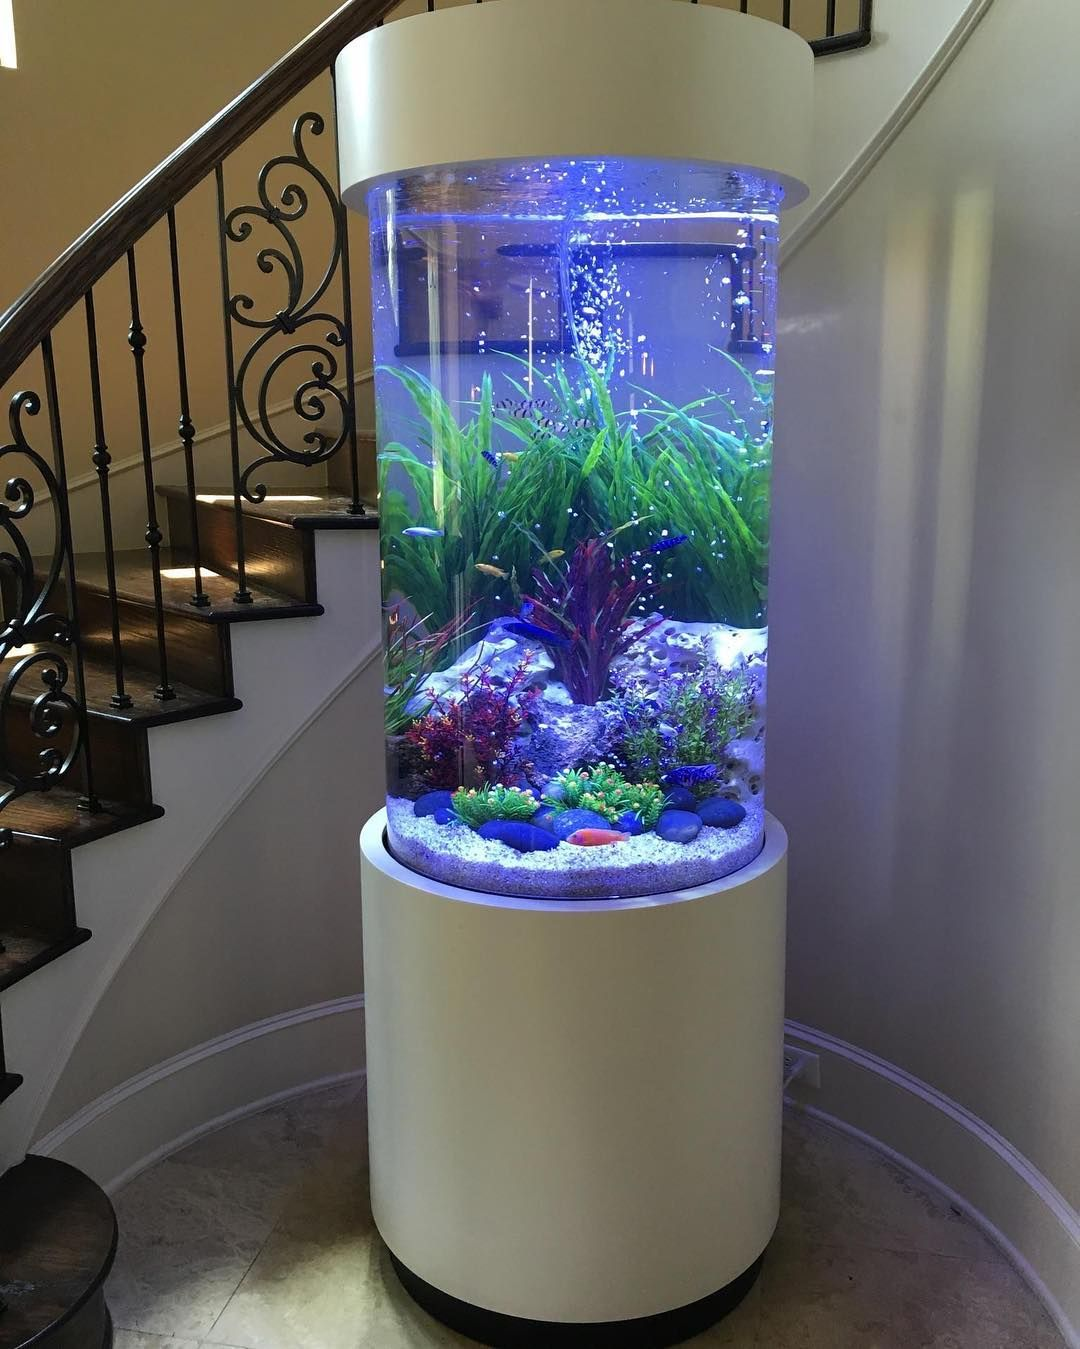 Home Aquarium Design Ideas: We Did Some Work On This Gorgeous Cylinder This Morning